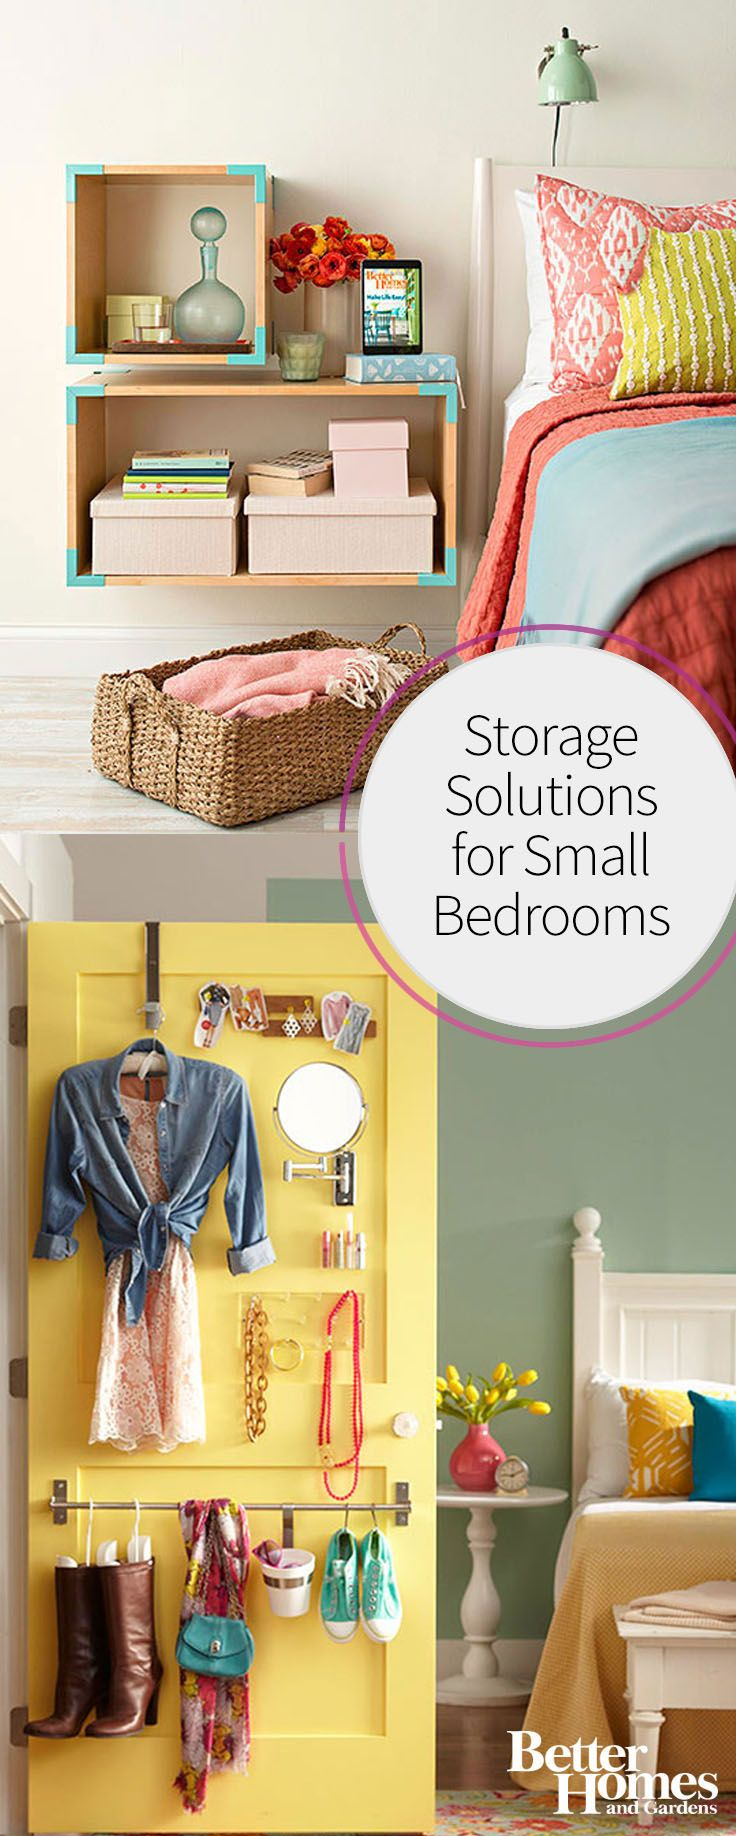 Best 25 small bedroom storage ideas on pinterest small - Small space storage solutions for bedroom ...